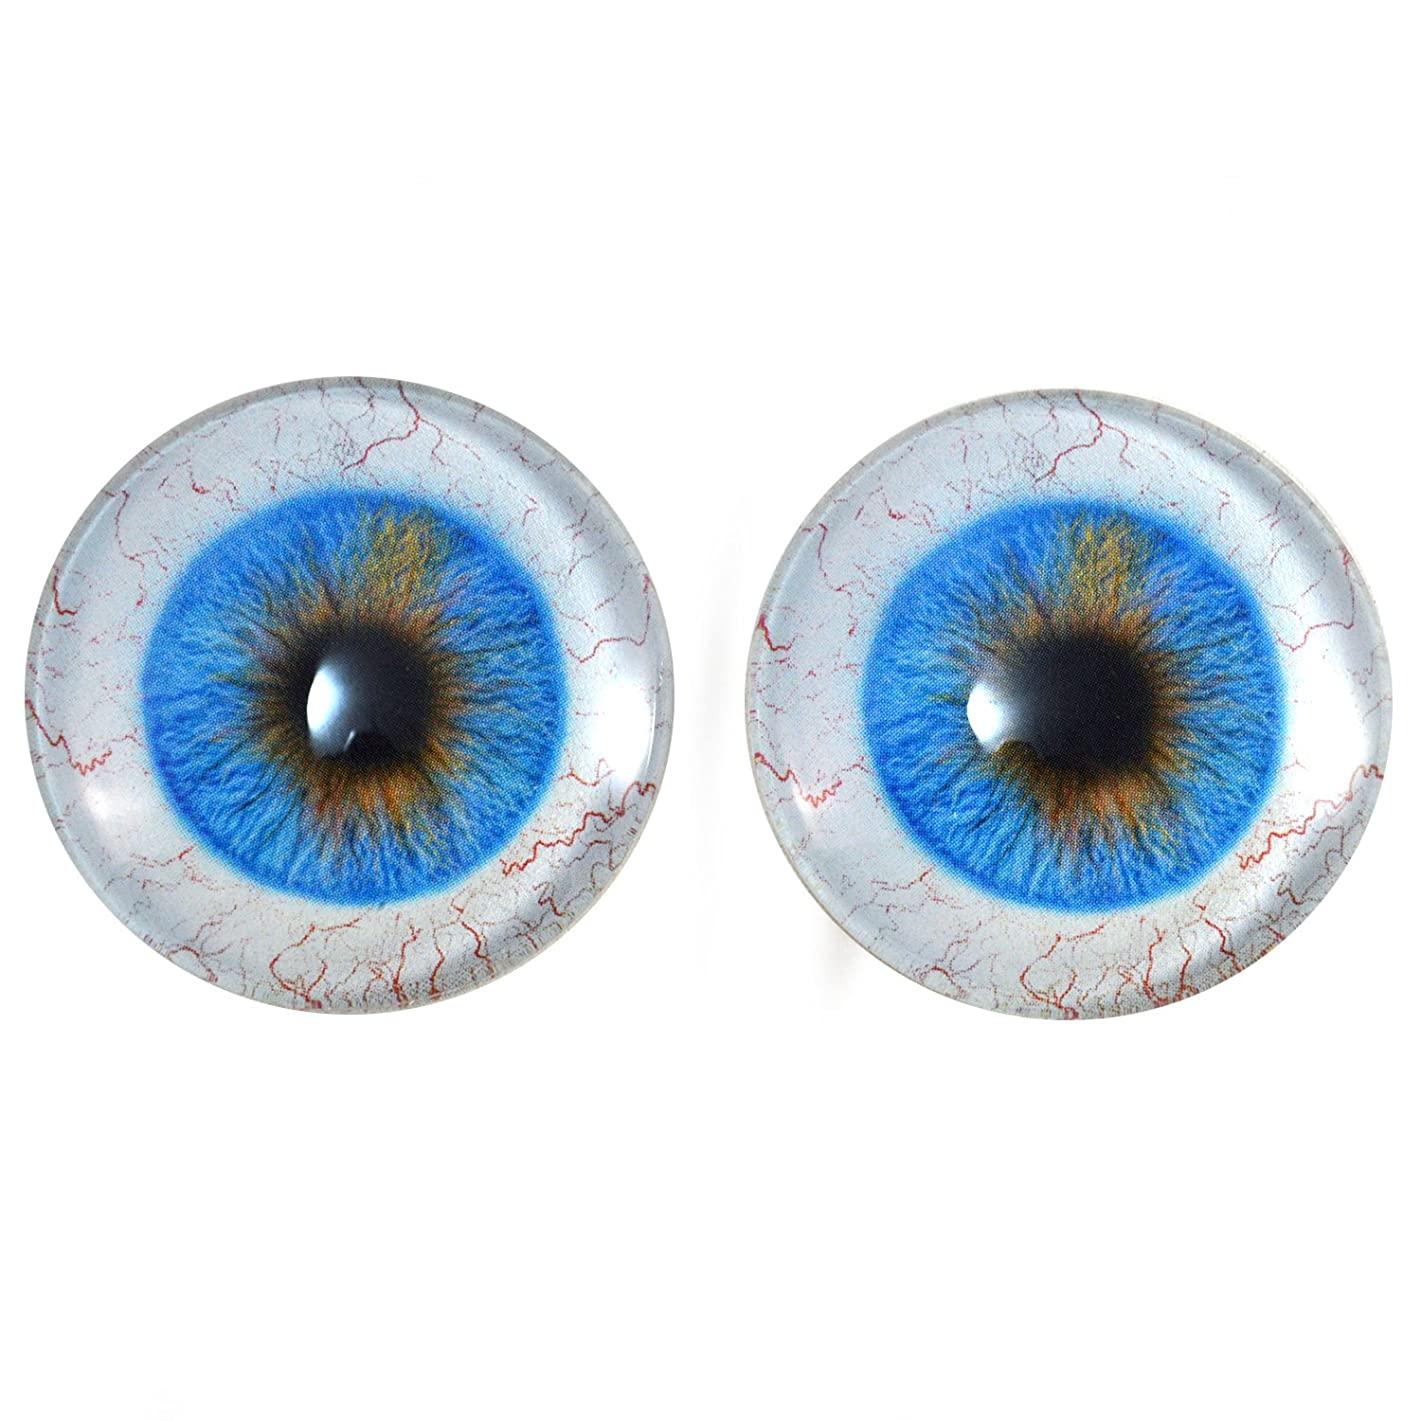 50mm Huge Blue Human Glass Eyes Pair with Sclera Whites - for Art Dolls, Sculptures, Props, Halloween, Jewelry Making, Taxidermy, and More